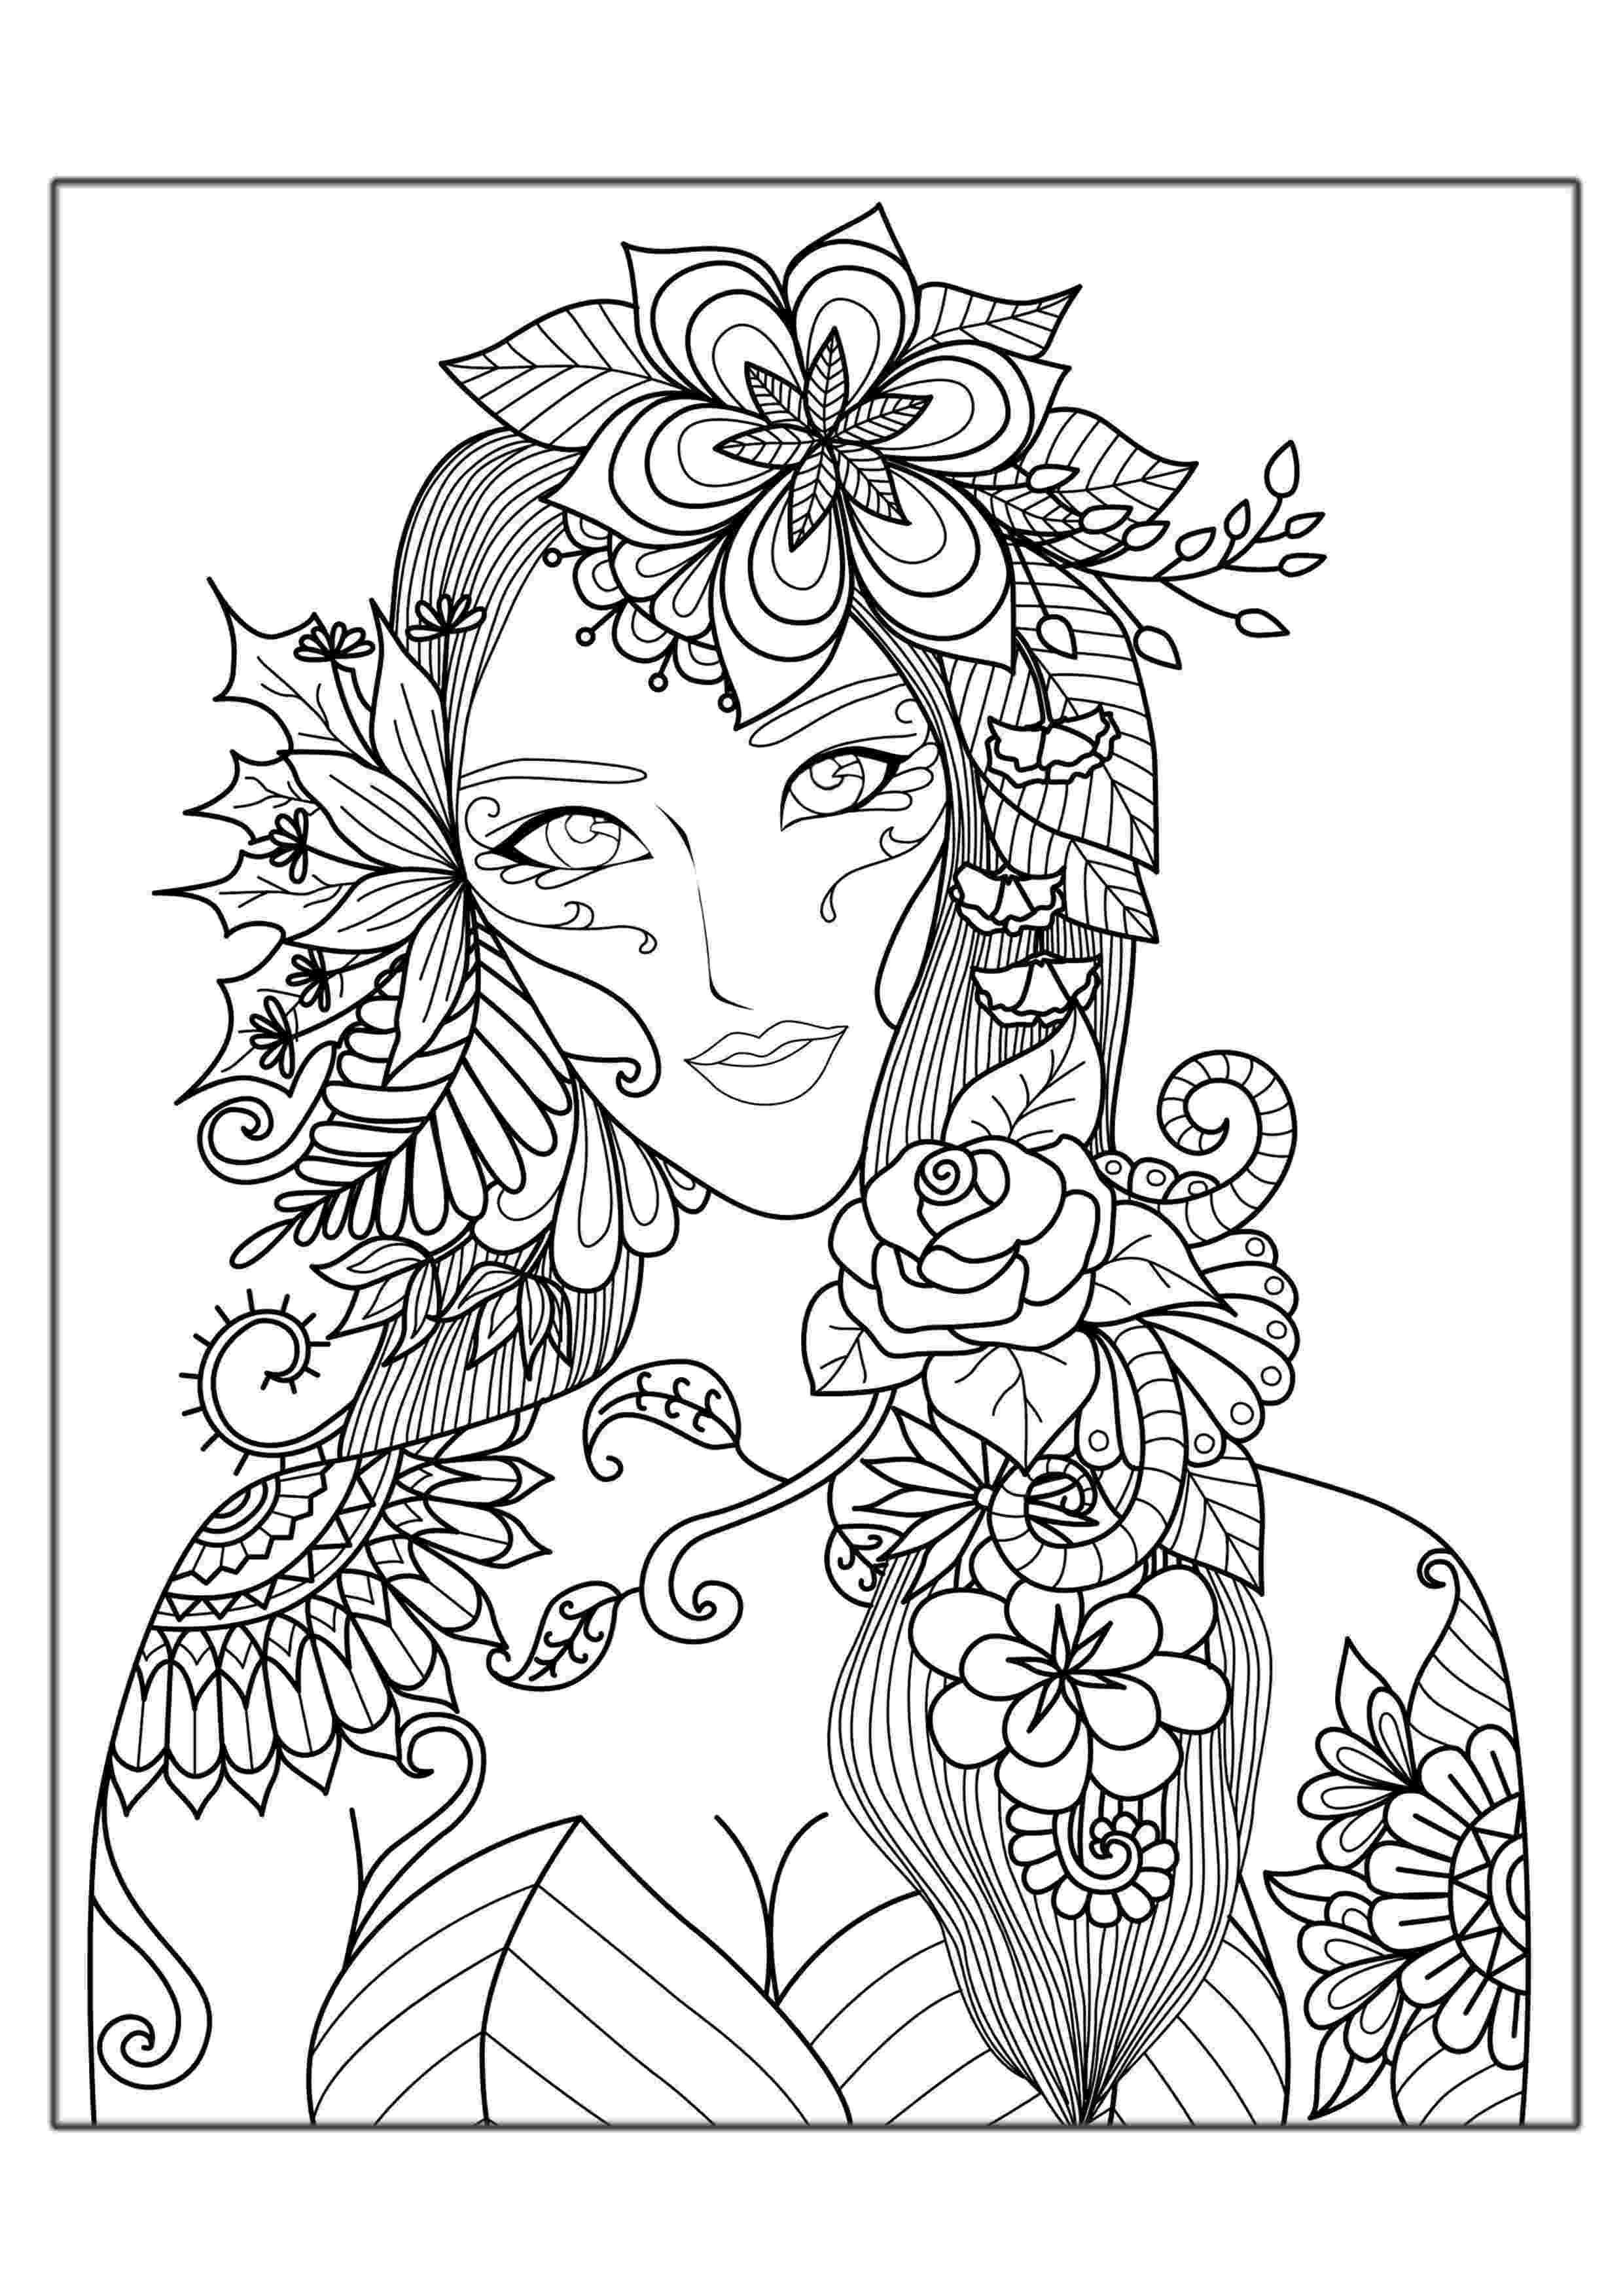 free printable coloring for adults 20 free printable summer coloring pages for adults for printable free adults coloring